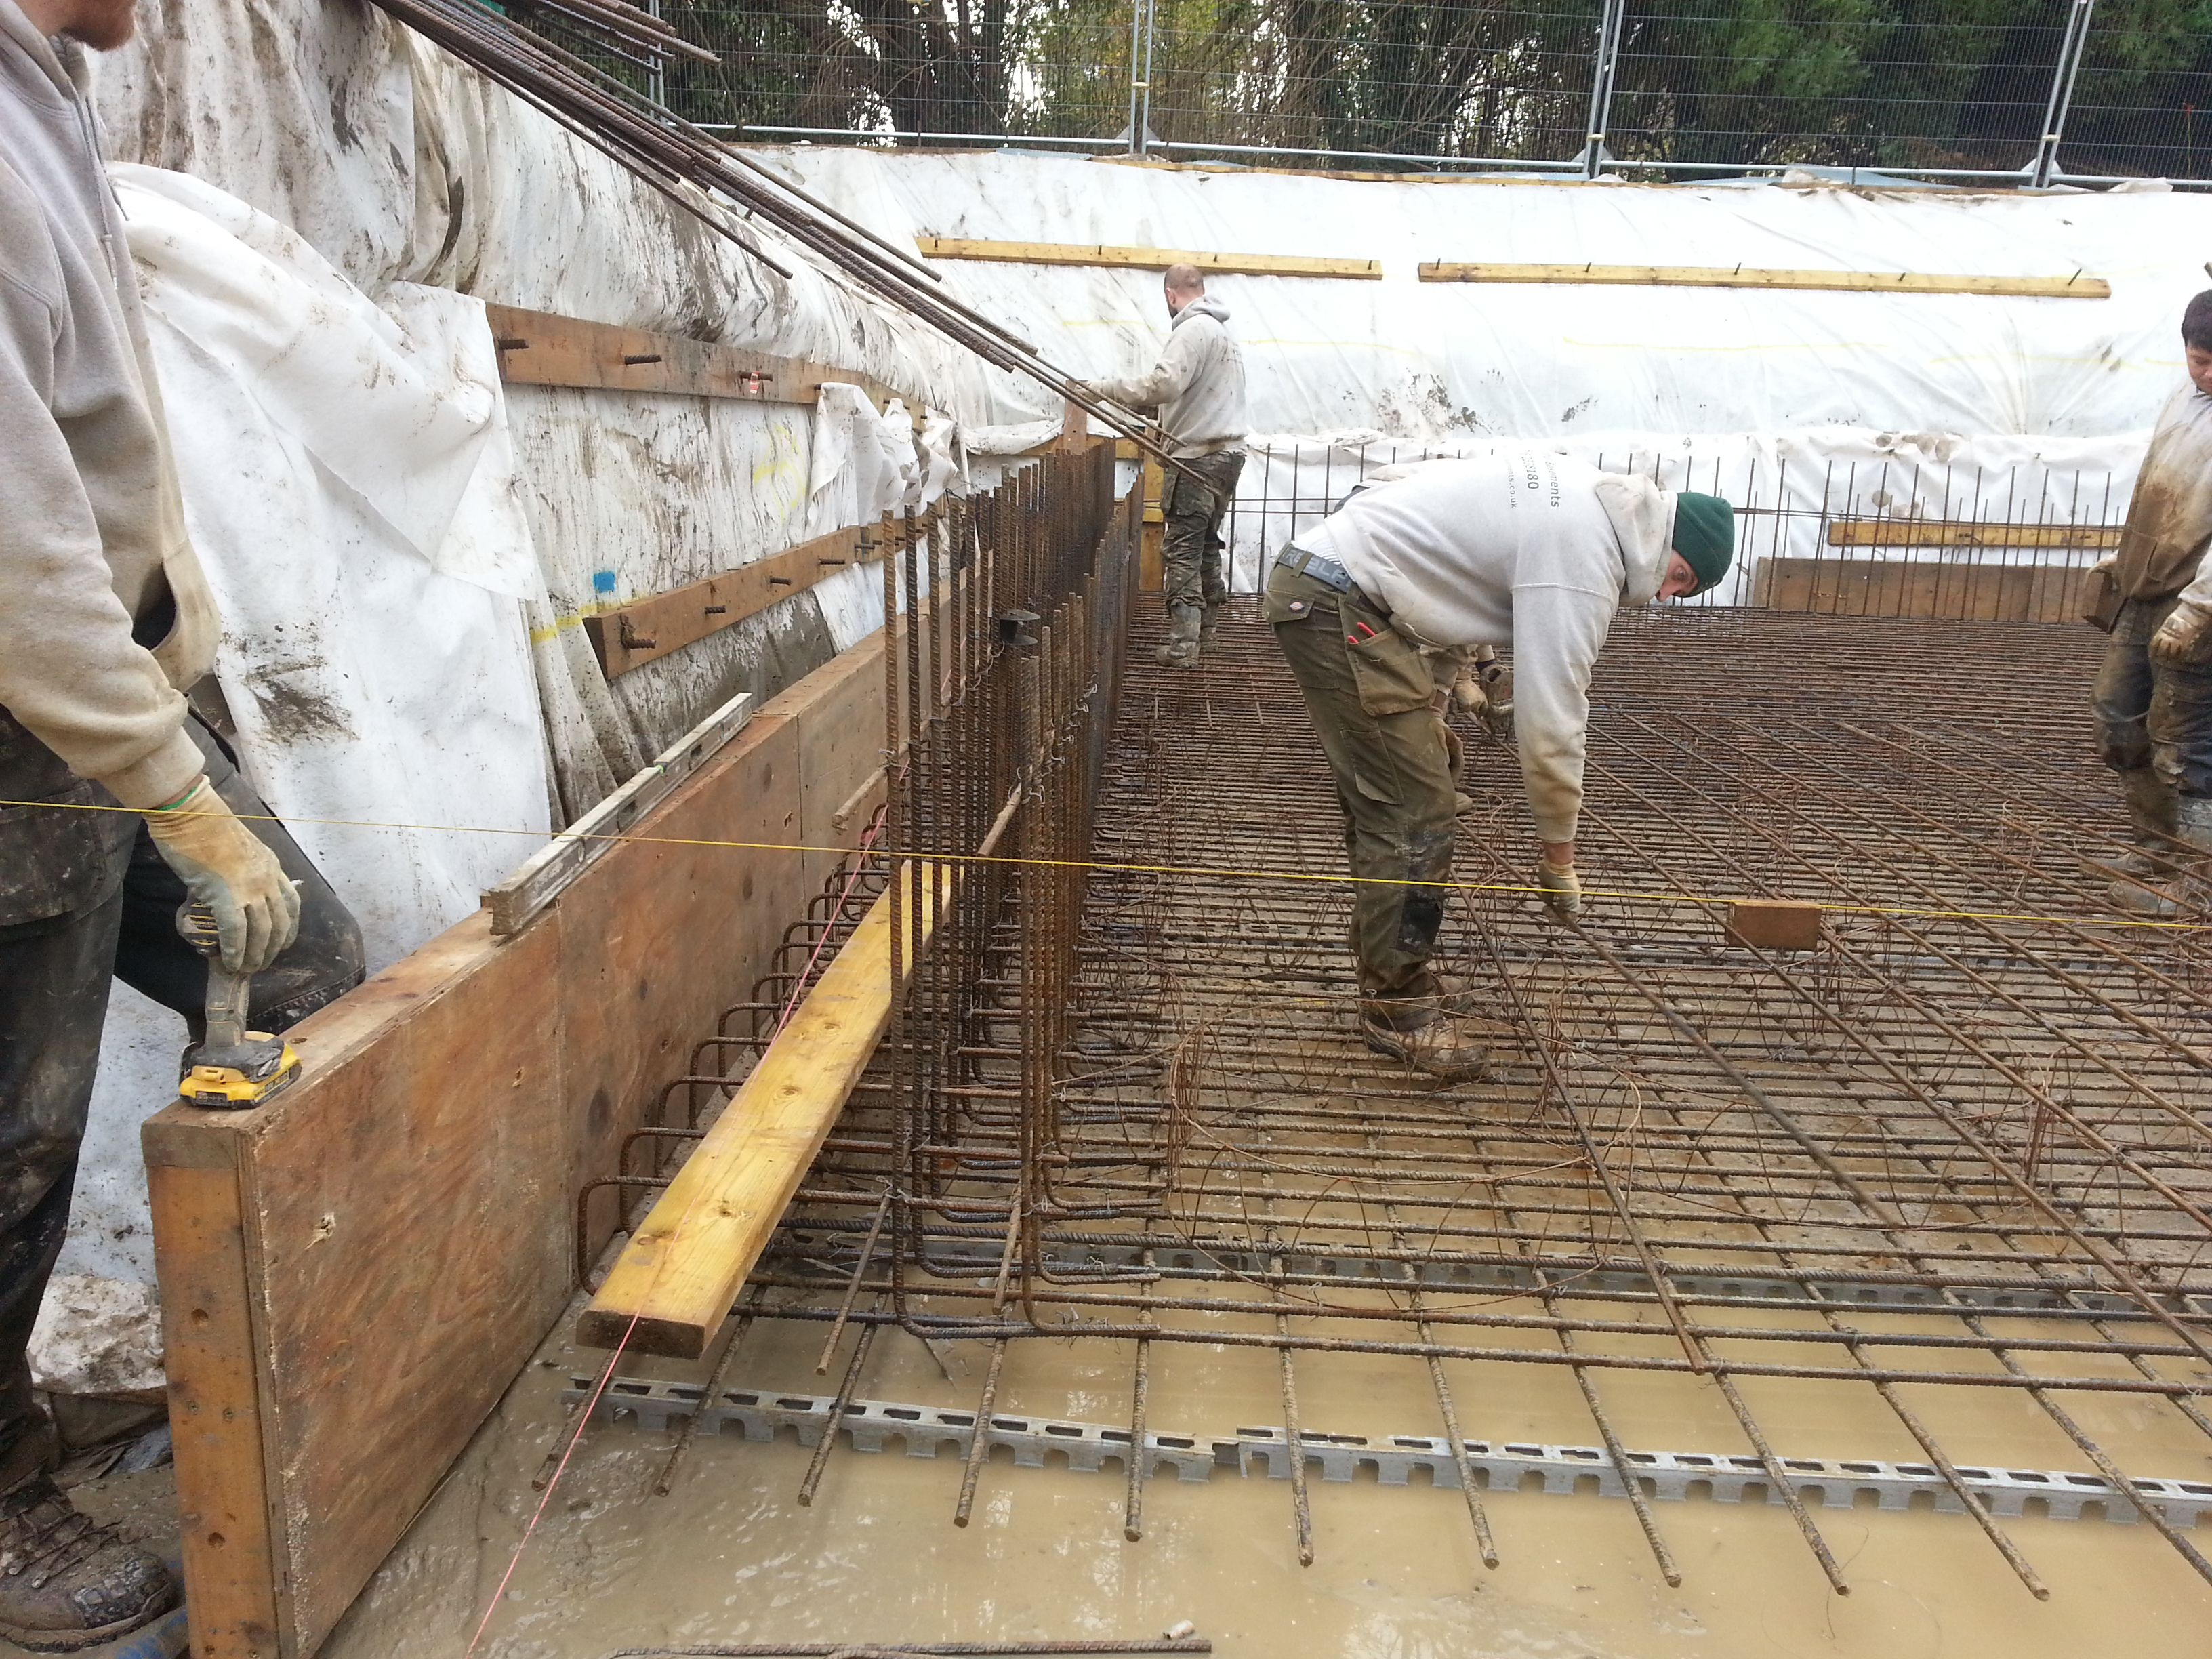 Reinforcing bars set out using string lines to allow continuity with the wall reinforcing above